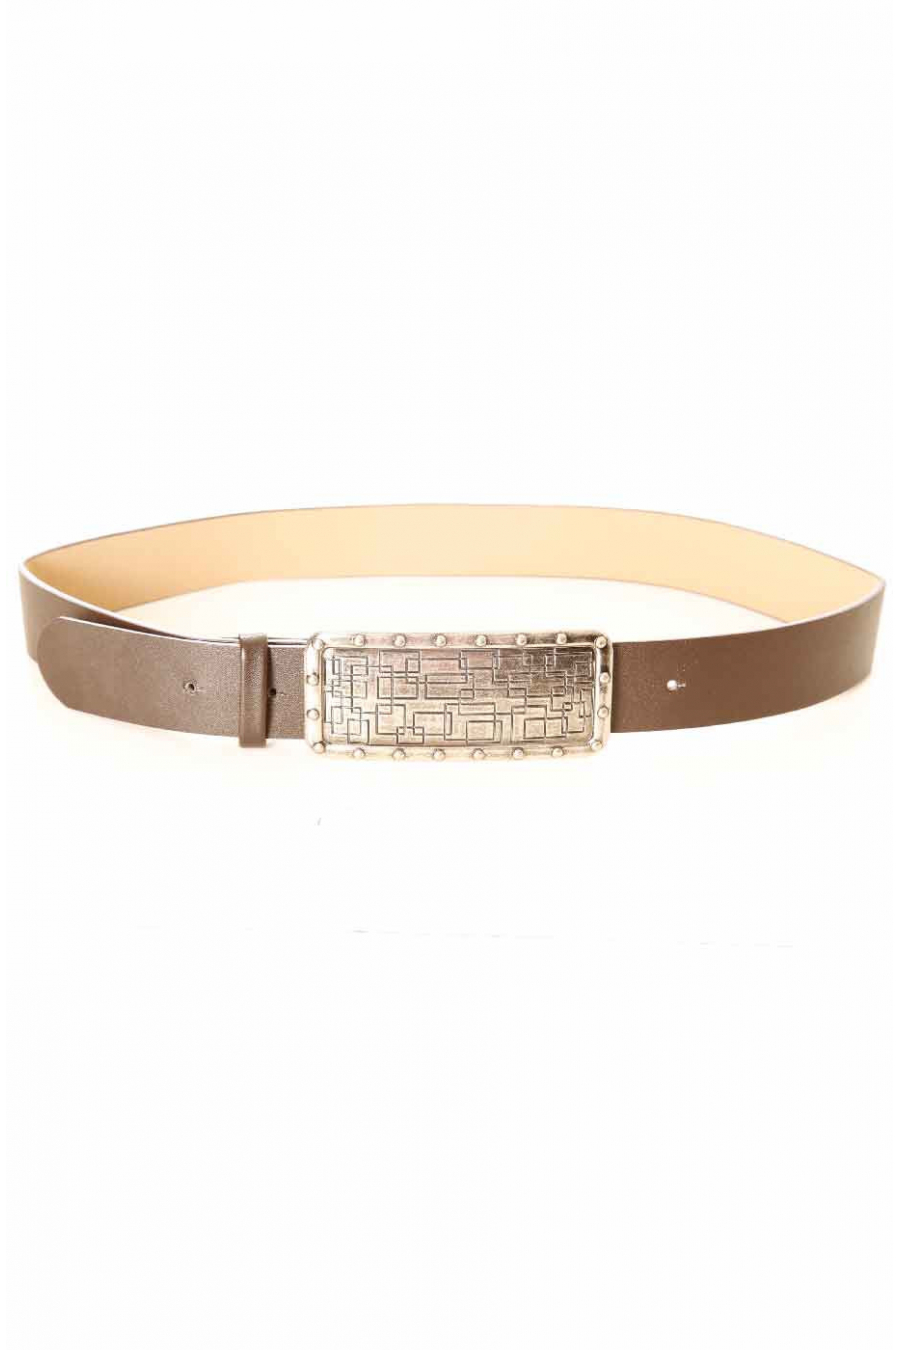 Brown belt with large graphic rectangle buckle CE 573